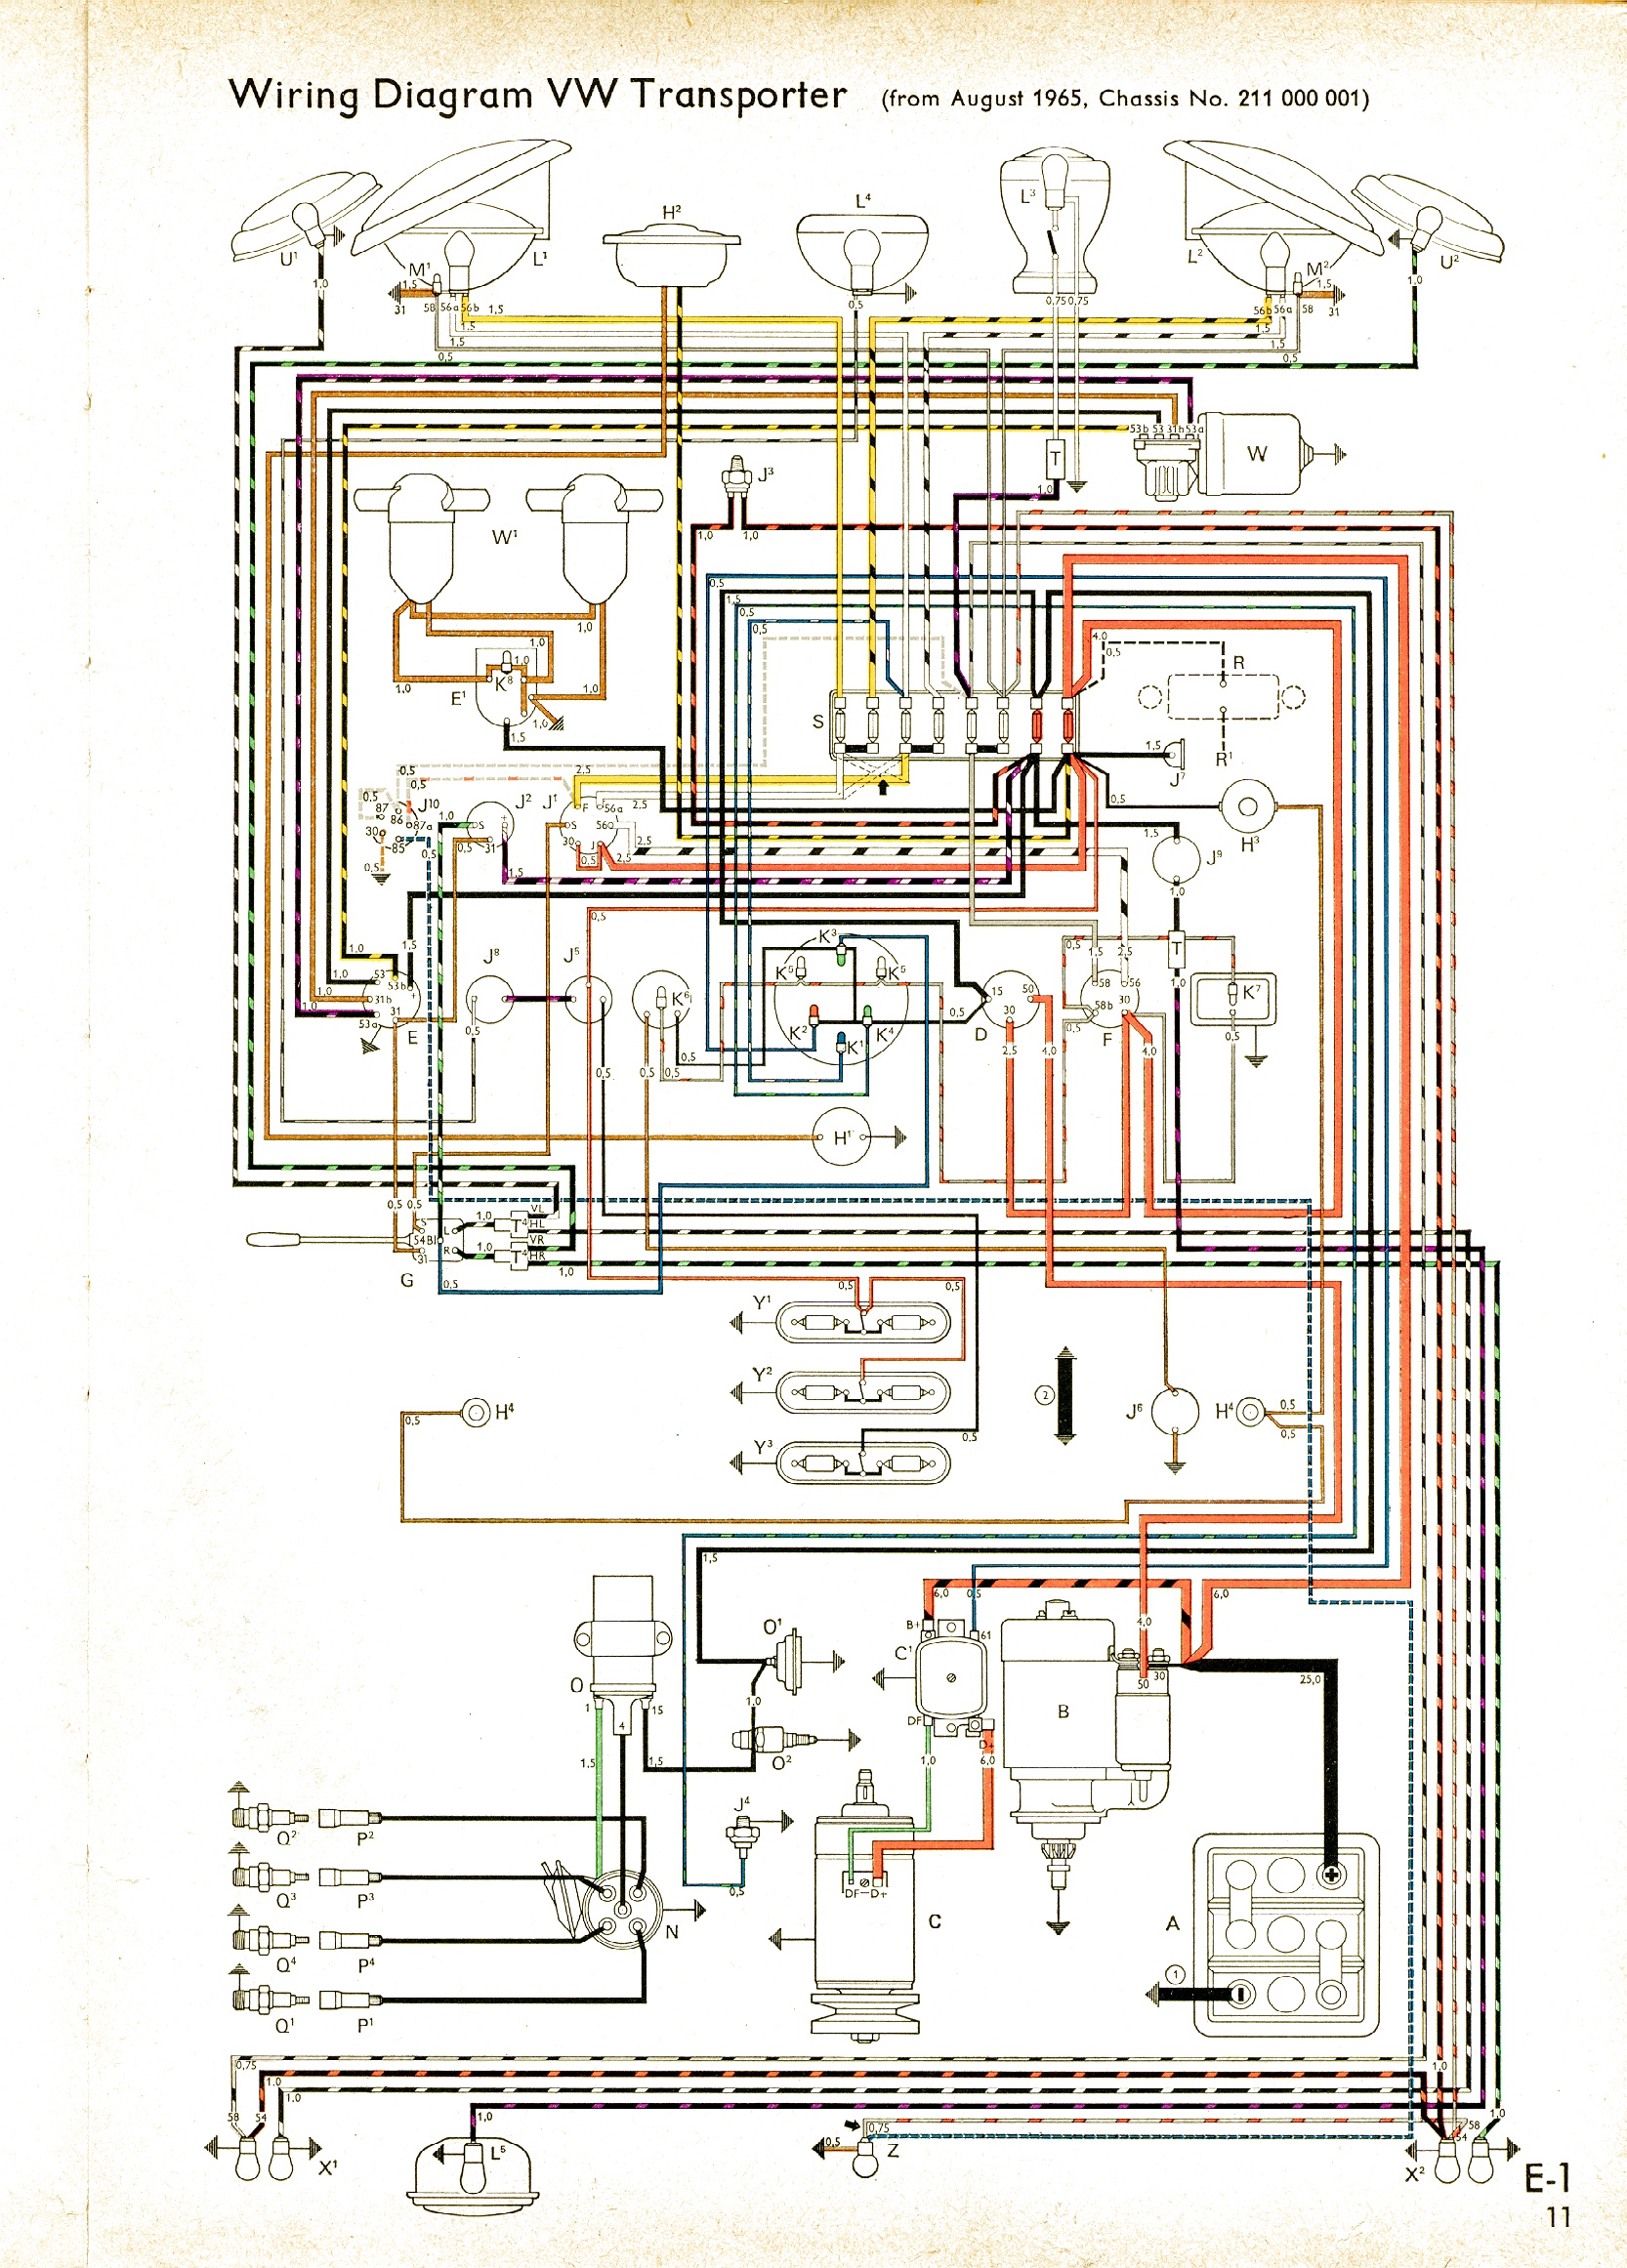 Vw van wiring diagram wiring diagrams schematics vintagebus com vw bus and other wiring diagrams com vw bus and other wiring diagrams vw van wiring diagram swarovskicordoba